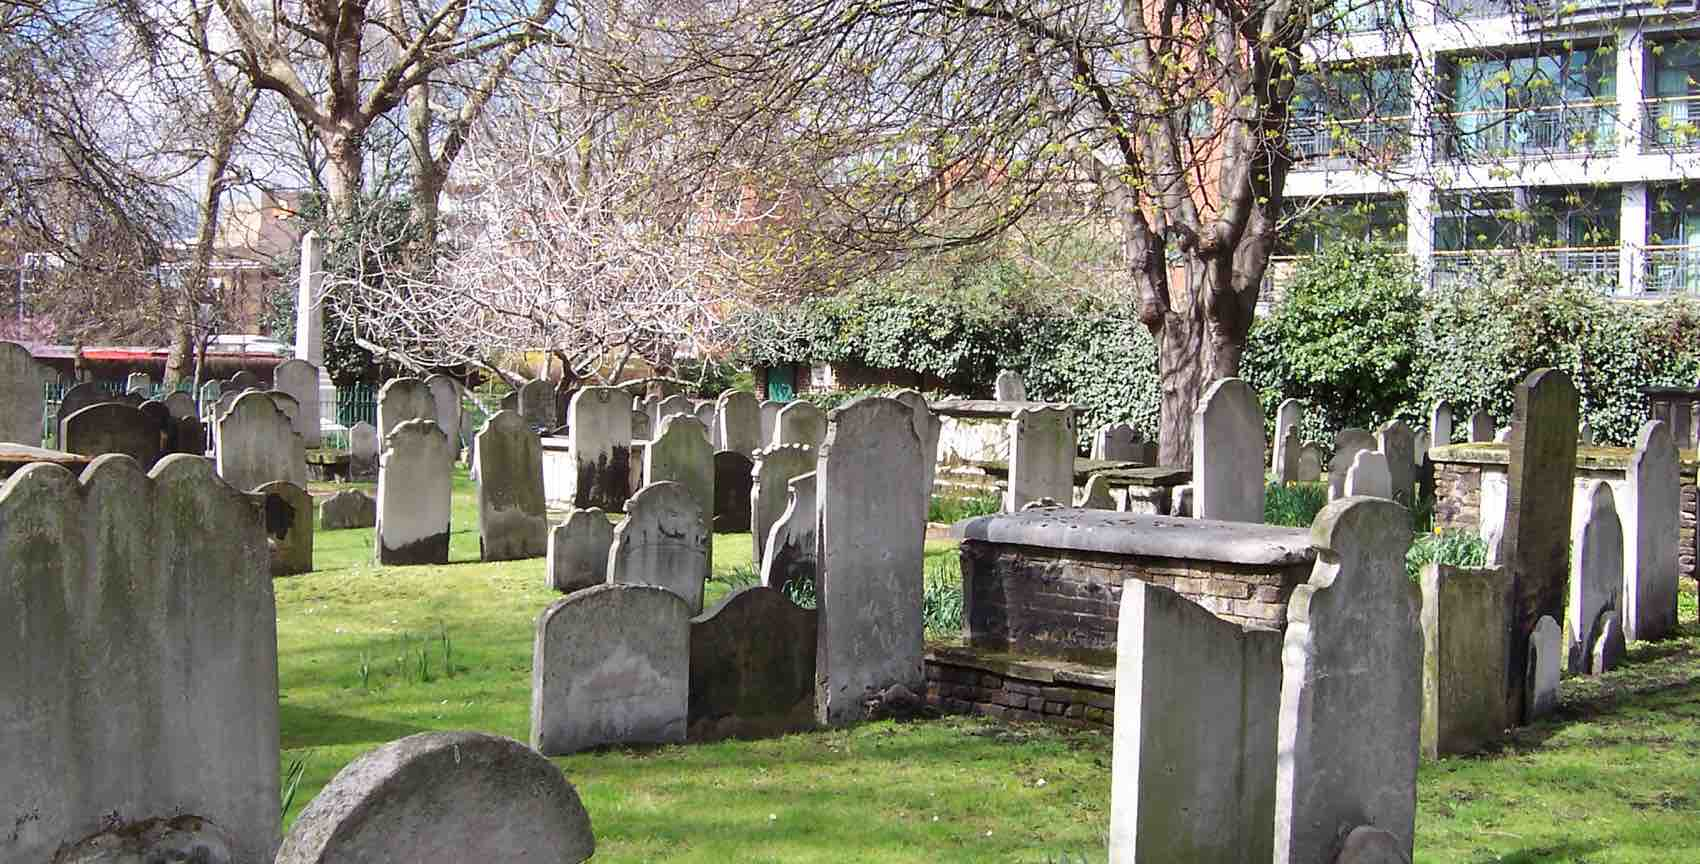 Old graves and gravestones at Bunhill Fields Burial Ground in central part of London